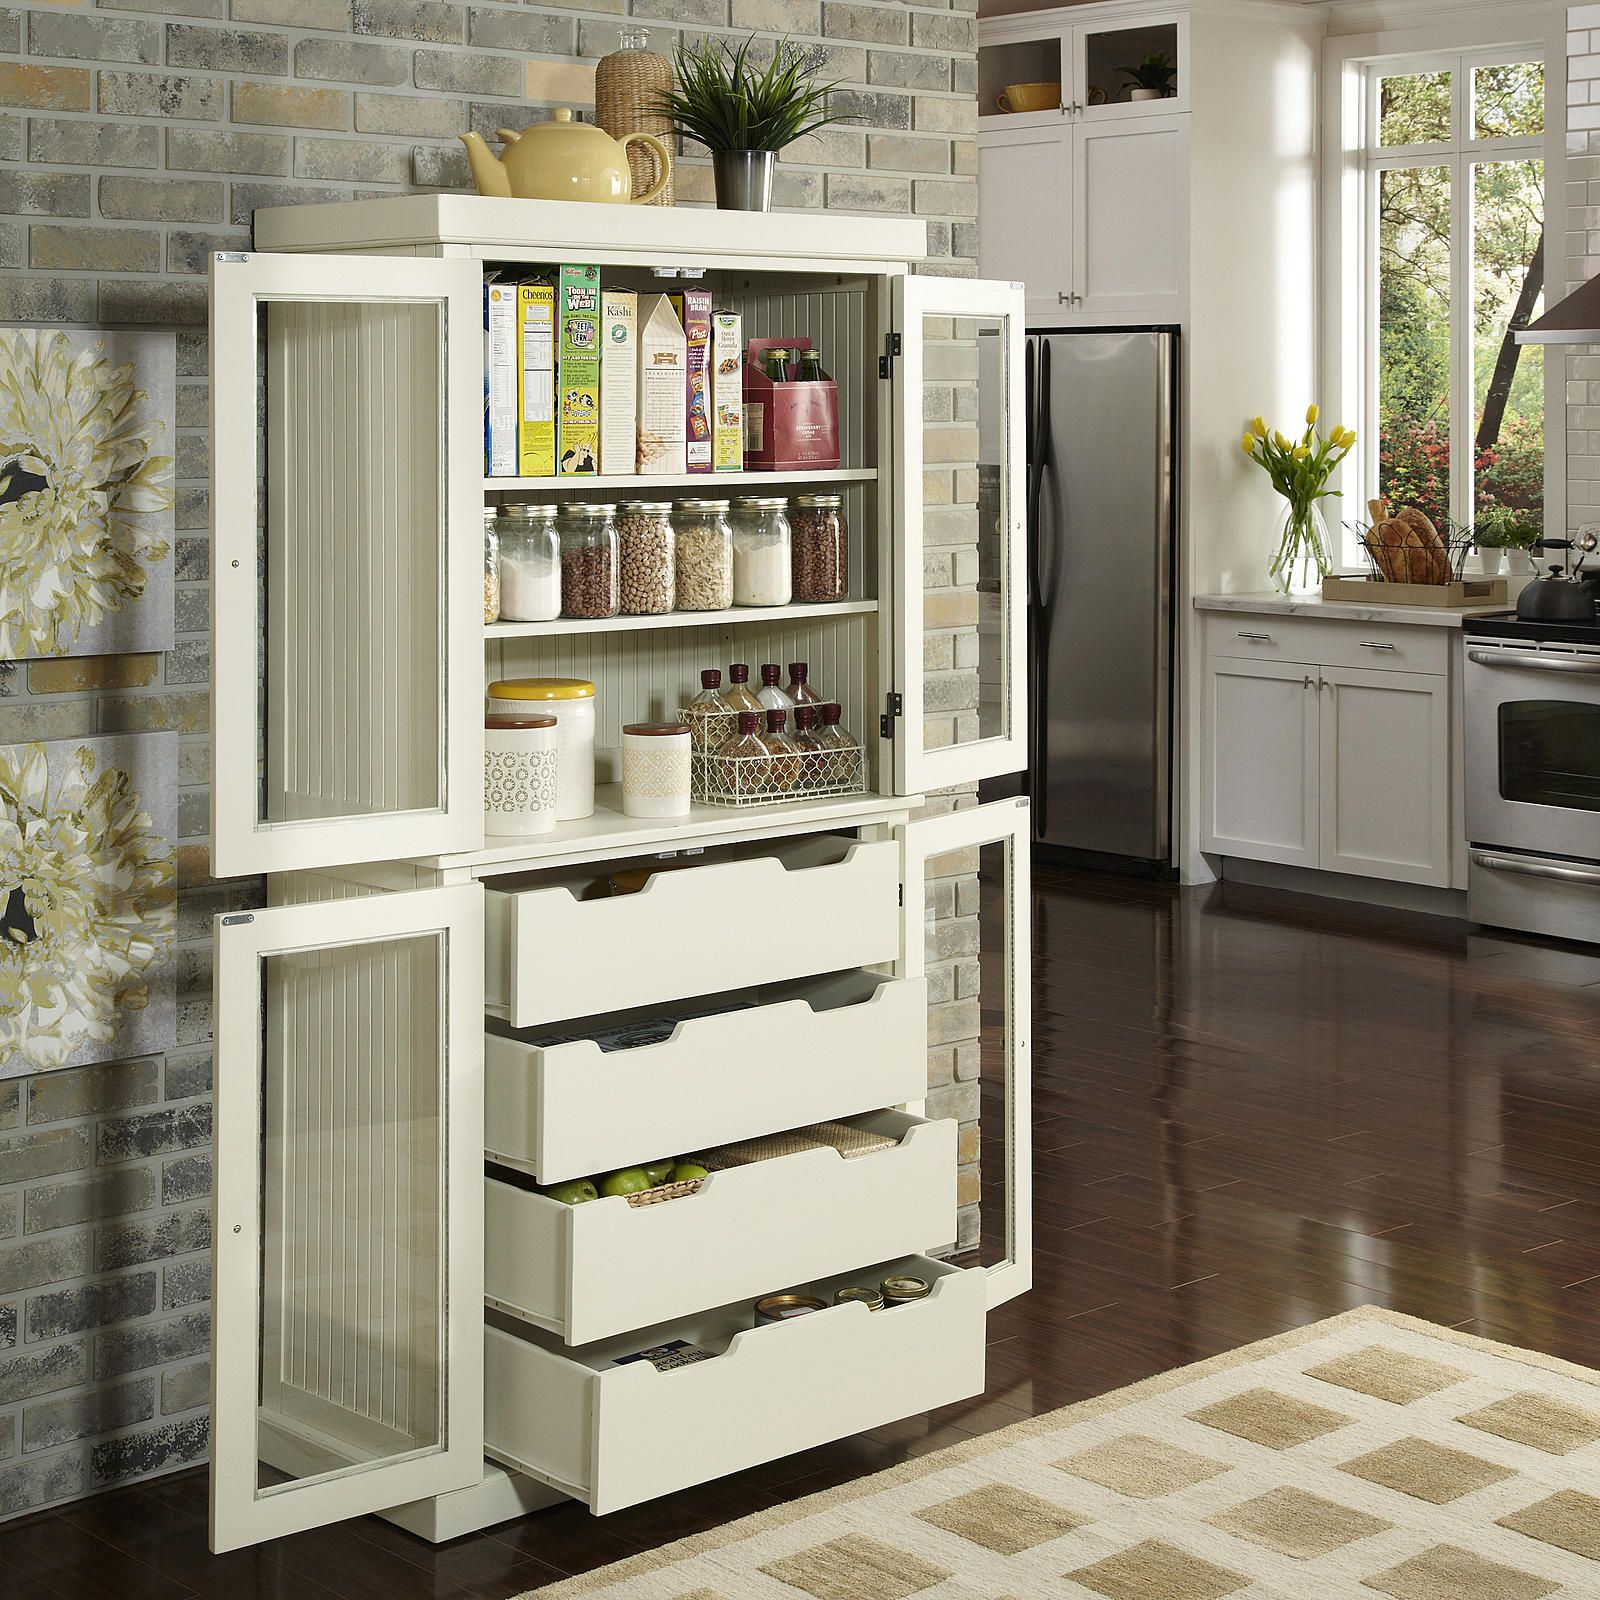 Best Of Free Standing Kitchen Cabinets Home Depot With Images Kitchen Cabinets Home Depot Quality Kitchen Cabinets Kitchen Cabinet Styles